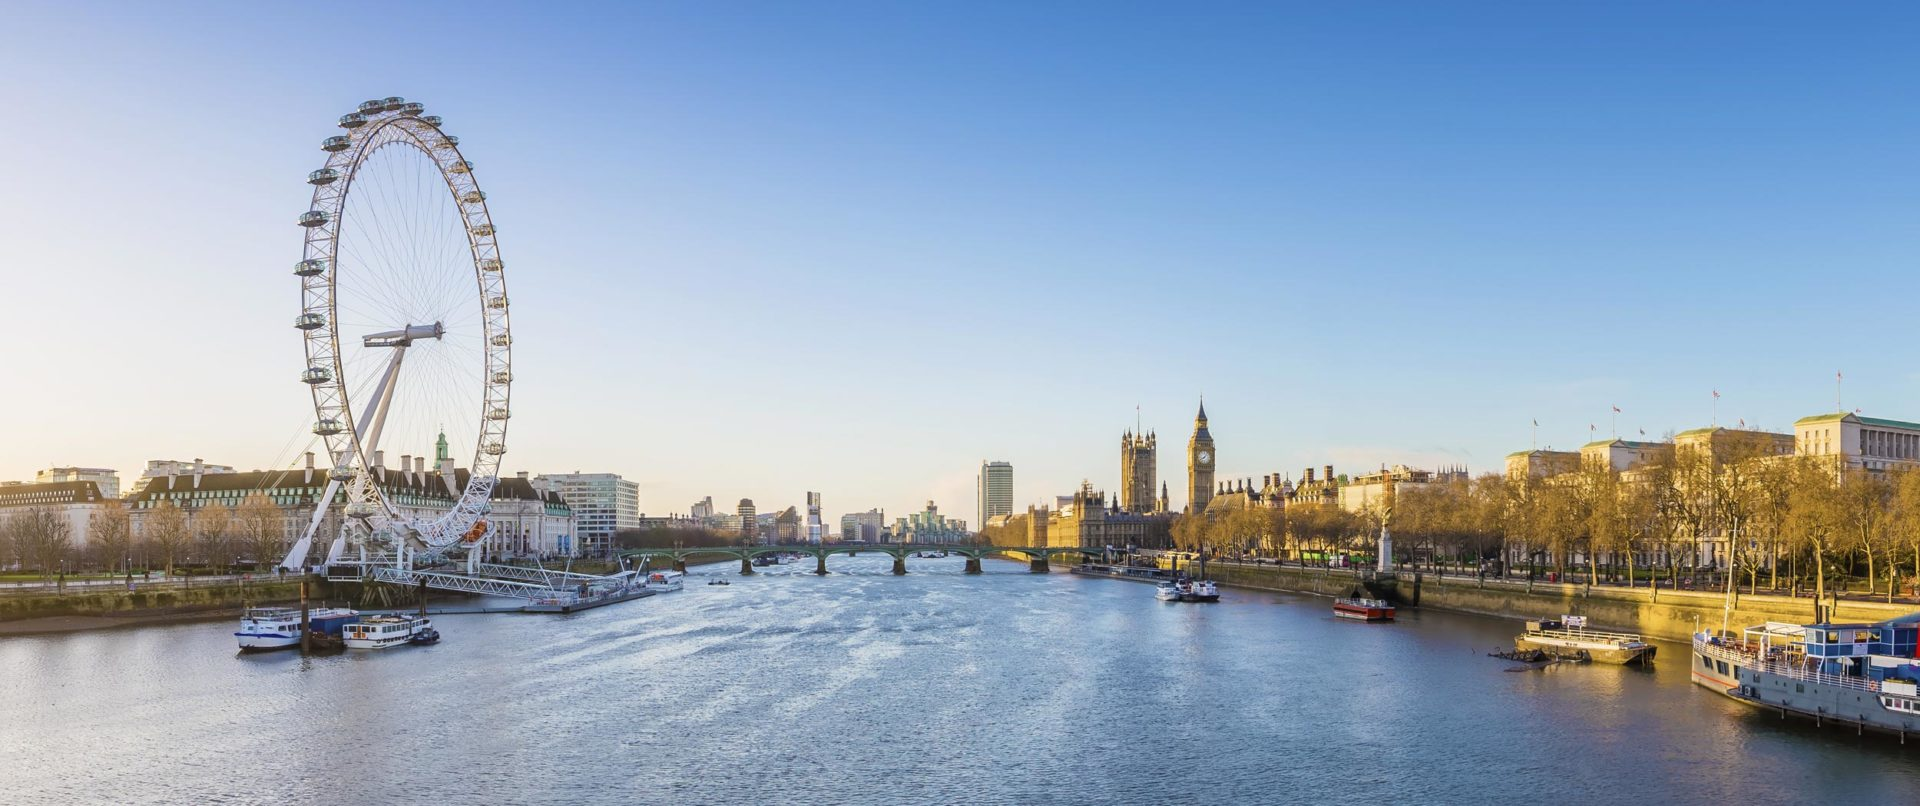 London-Eye-Thames-Speed-Boat-experiences-